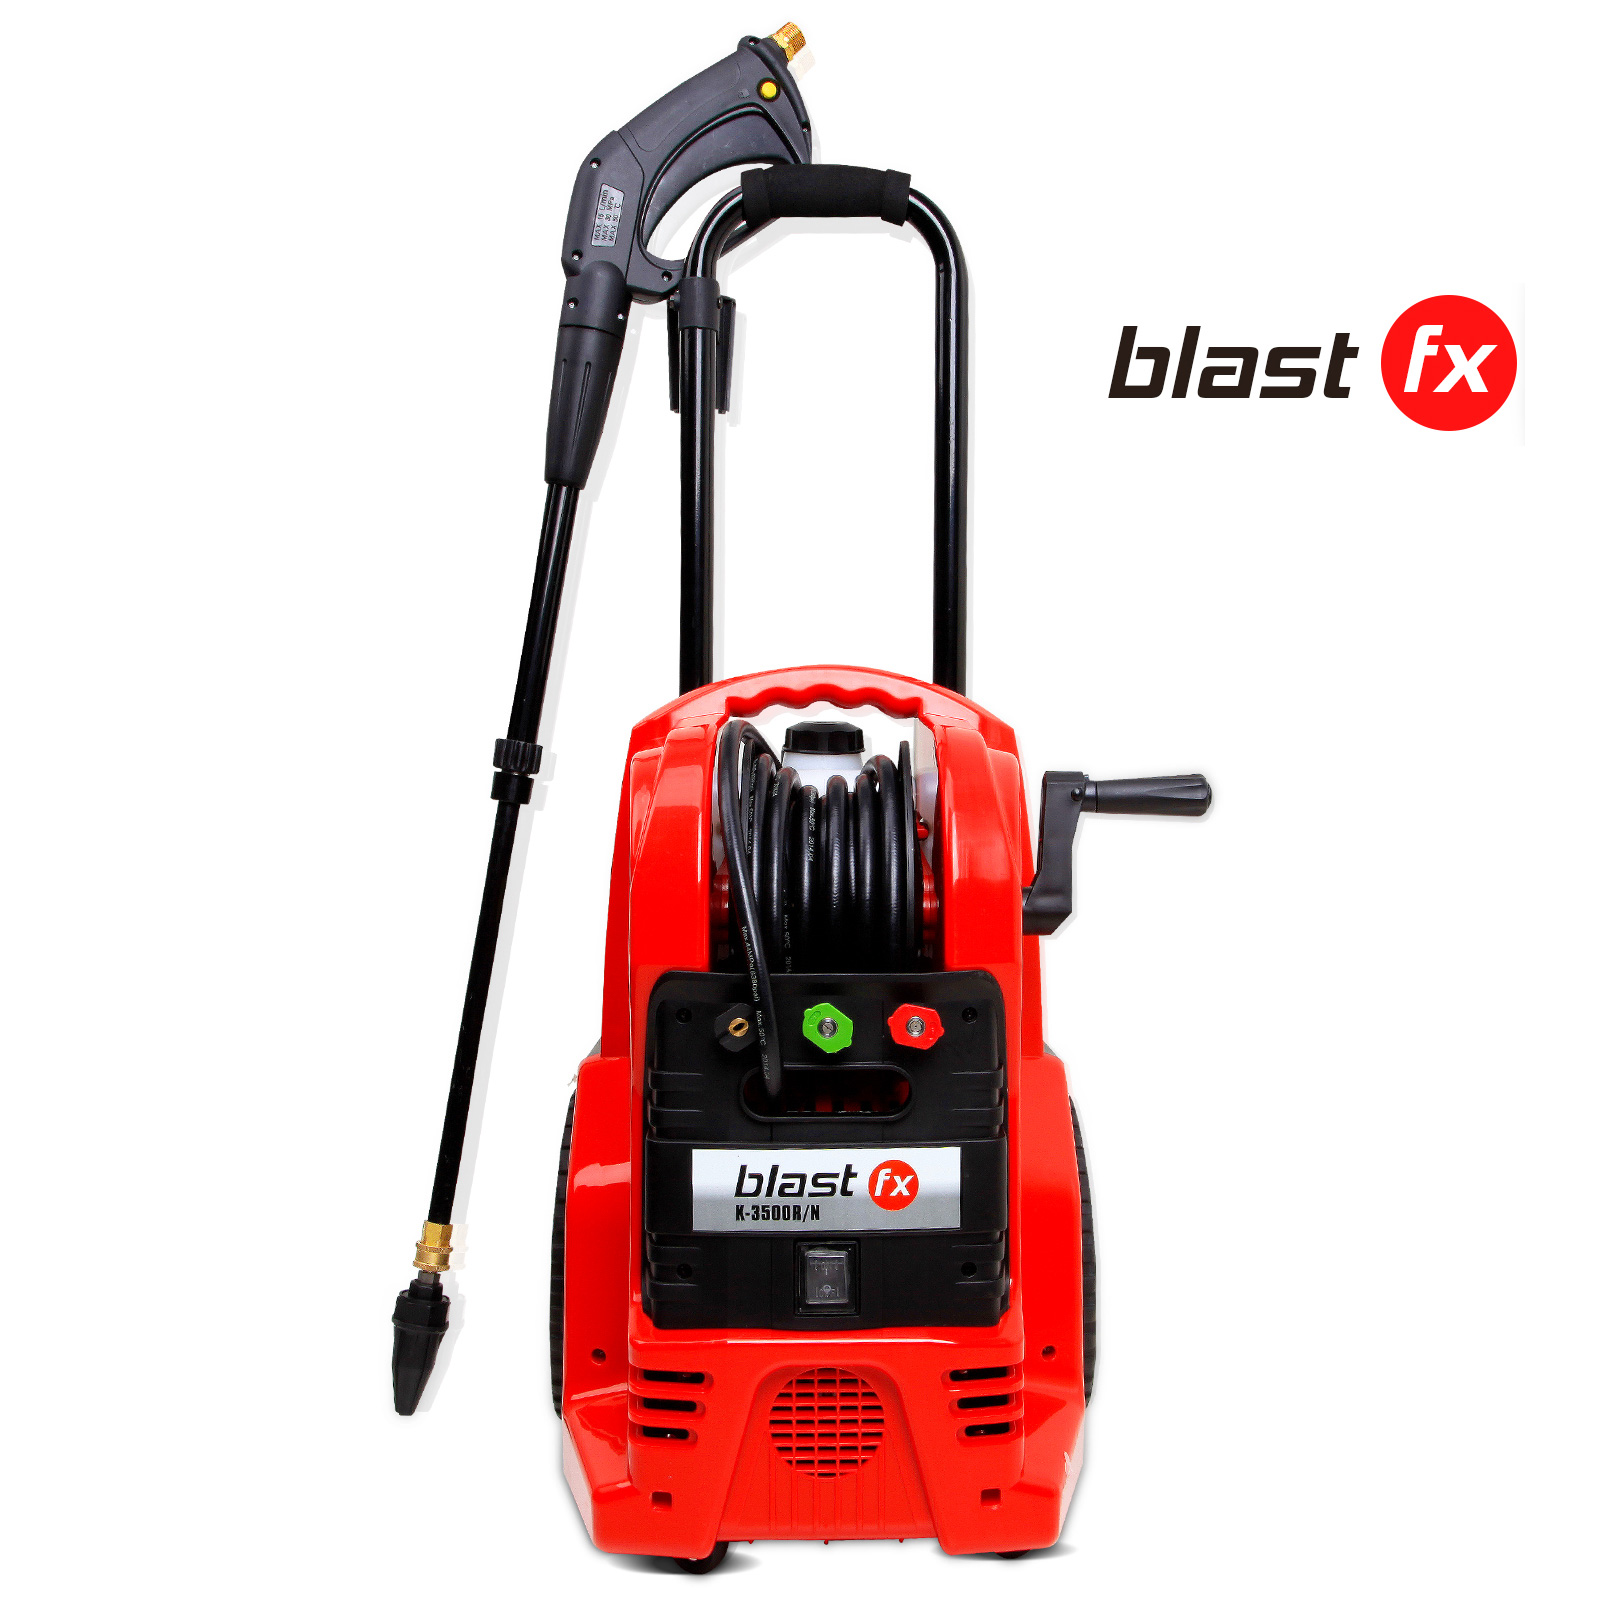 3600 PSI Powerful Water Washer Cleaner - Red Color